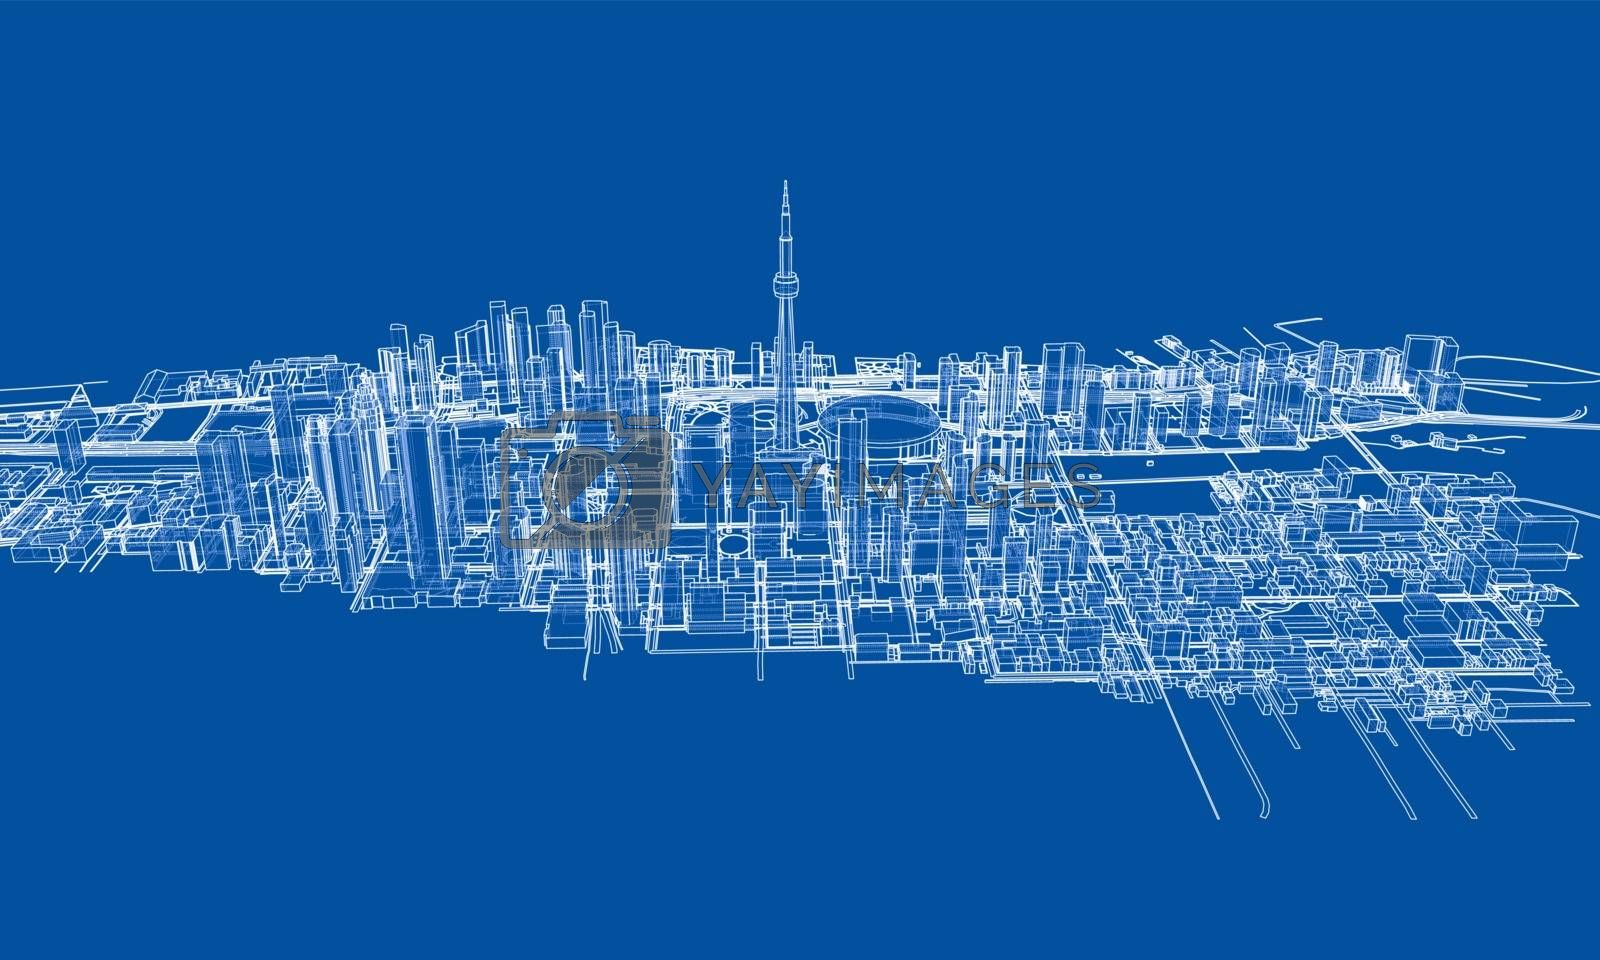 Outline city concept. Wire-frame style by cherezoff